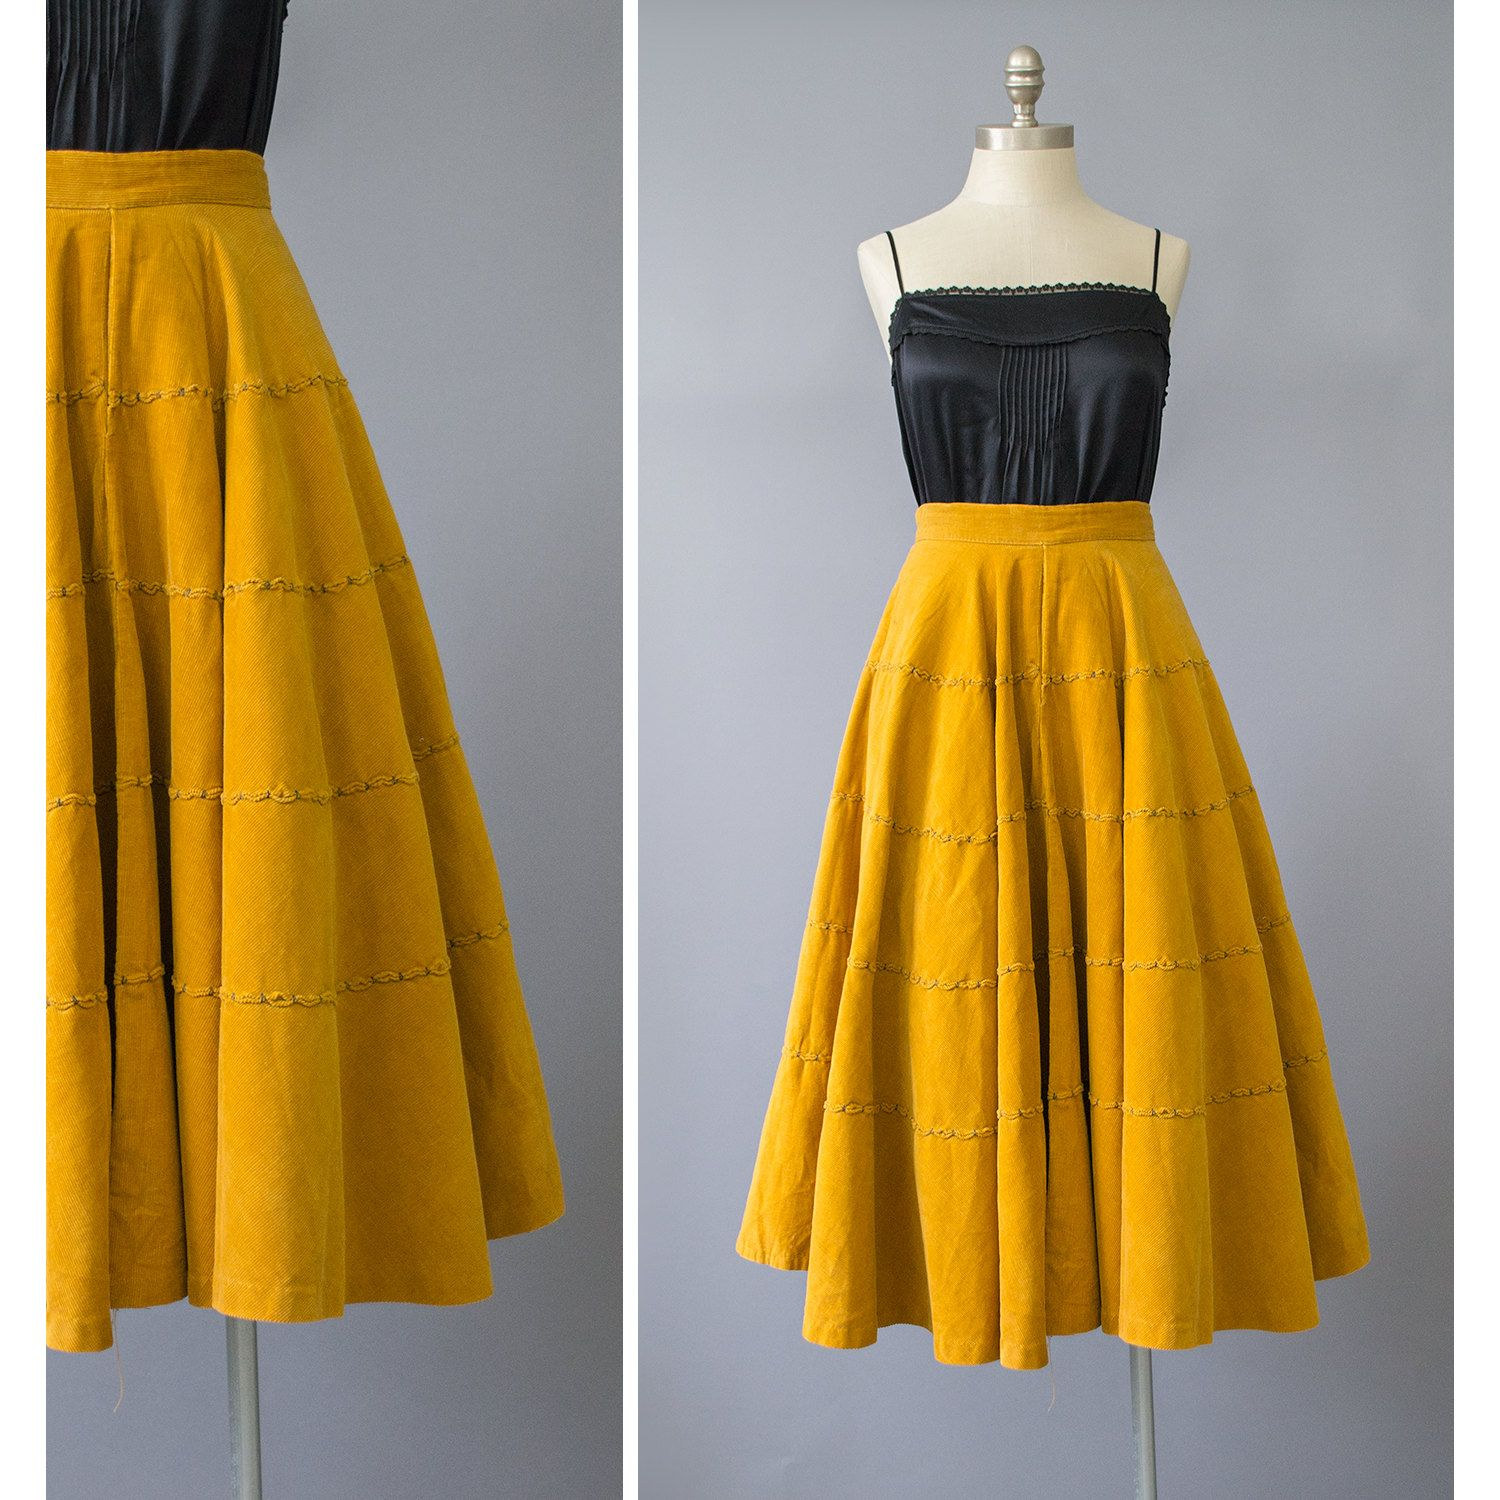 c53395a124ff Vintage 50s Skirt / 1950s Gold Corduroy Circle by recyclinghistory ...